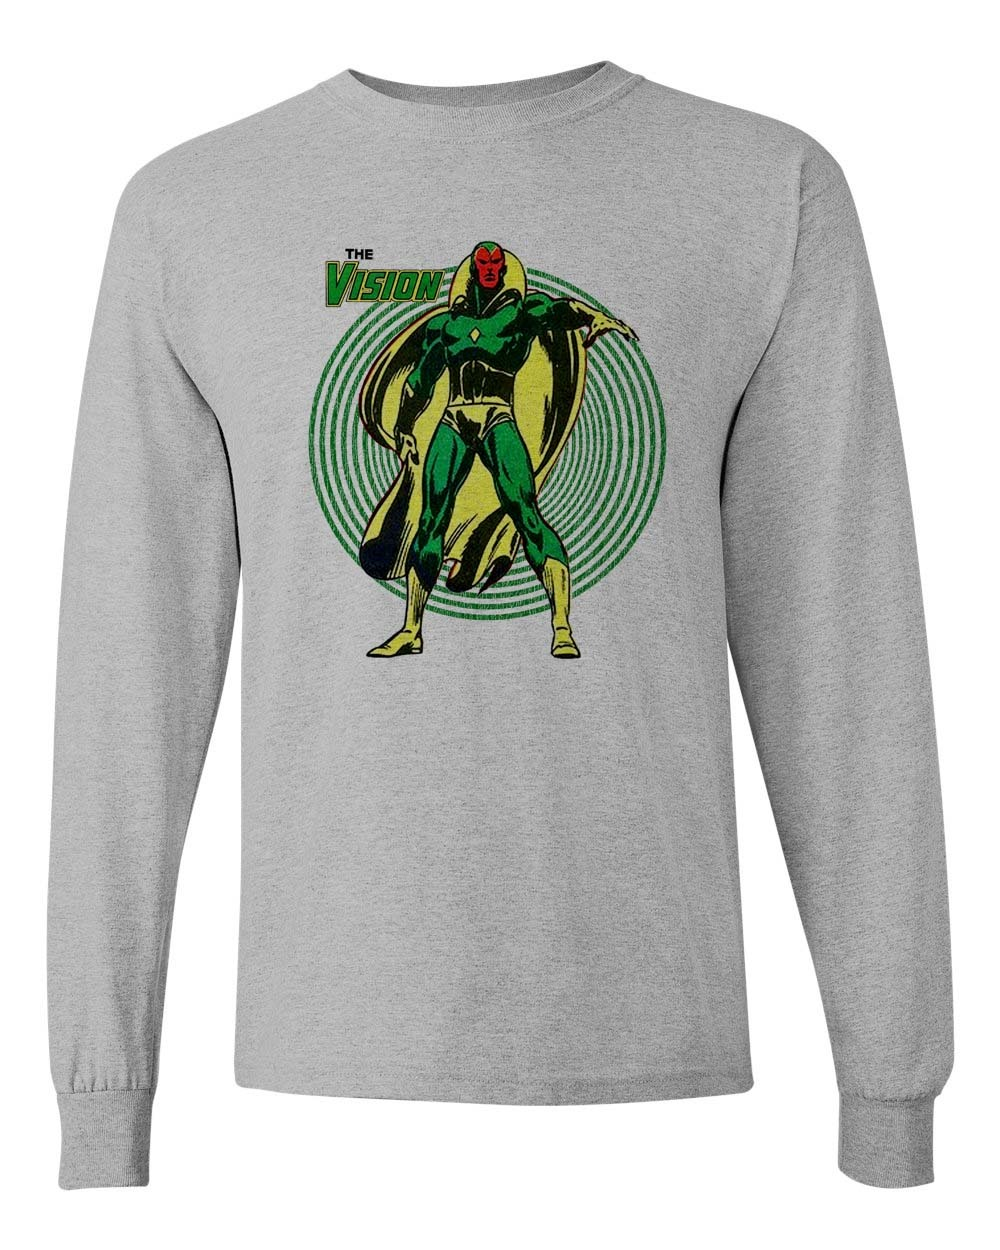 Ision marvel comics t shirt long sleeve the avengers civil war graphic tee store for sale online